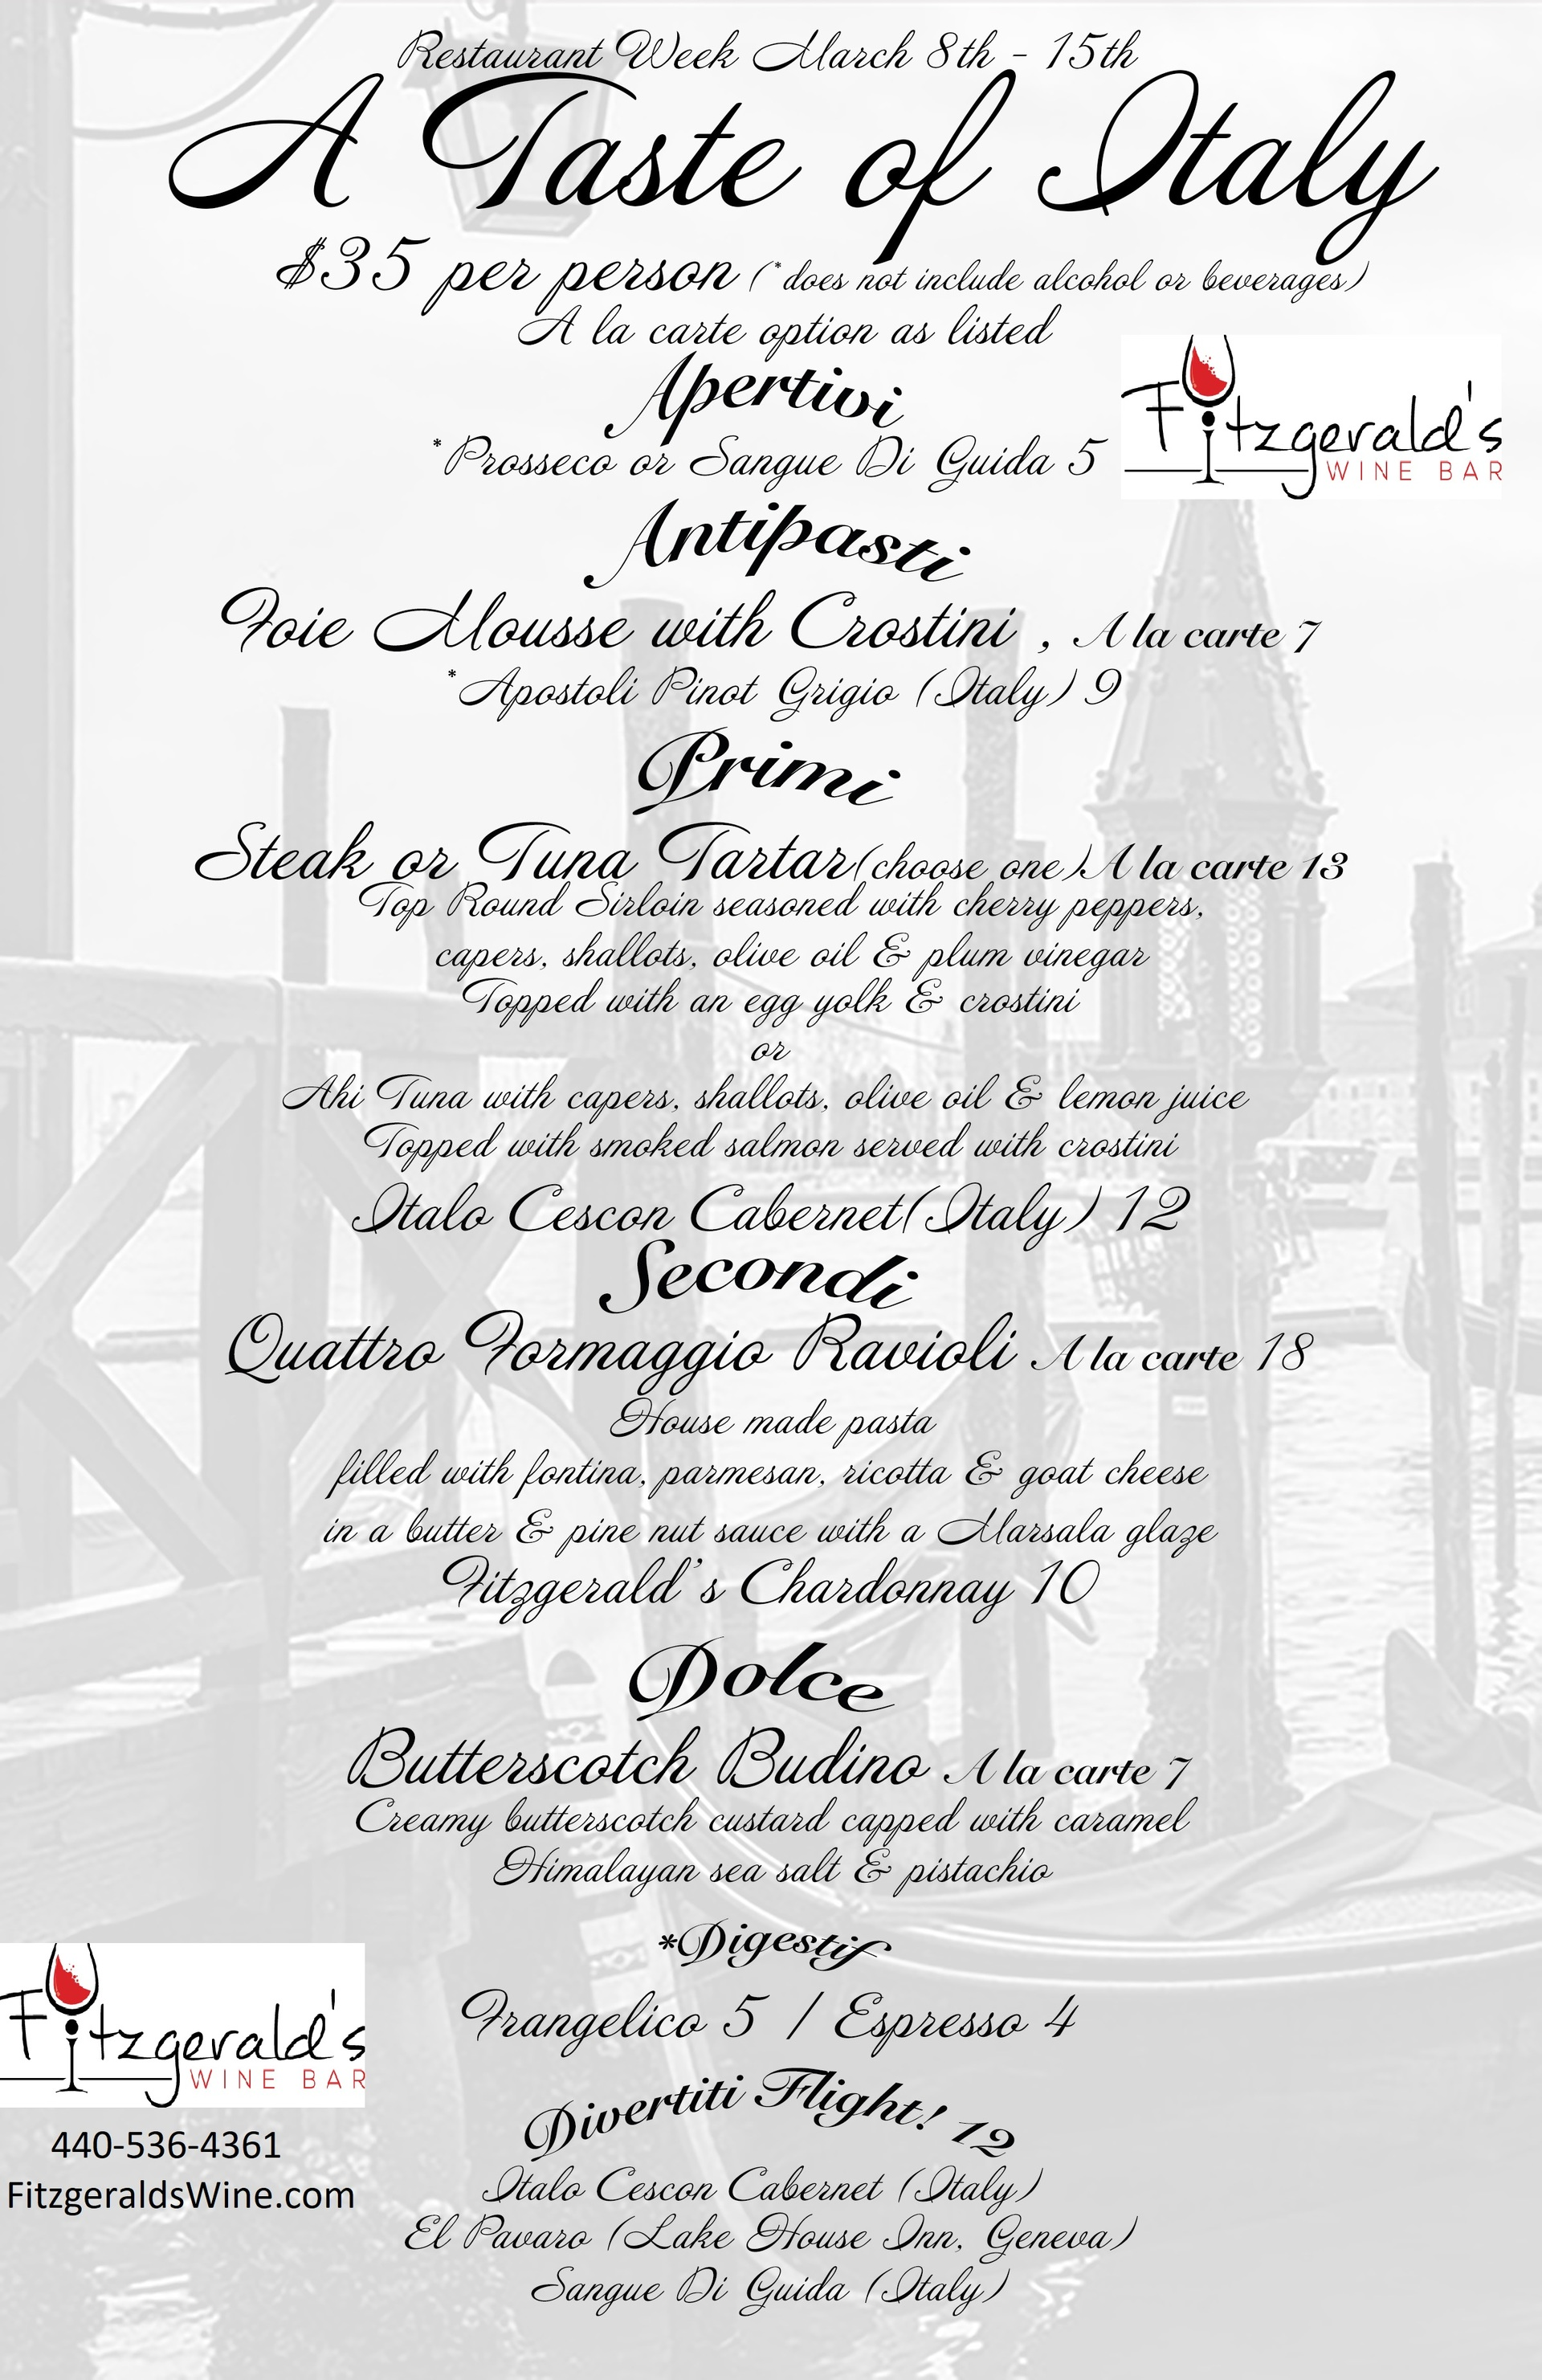 Restaurant Week Menu